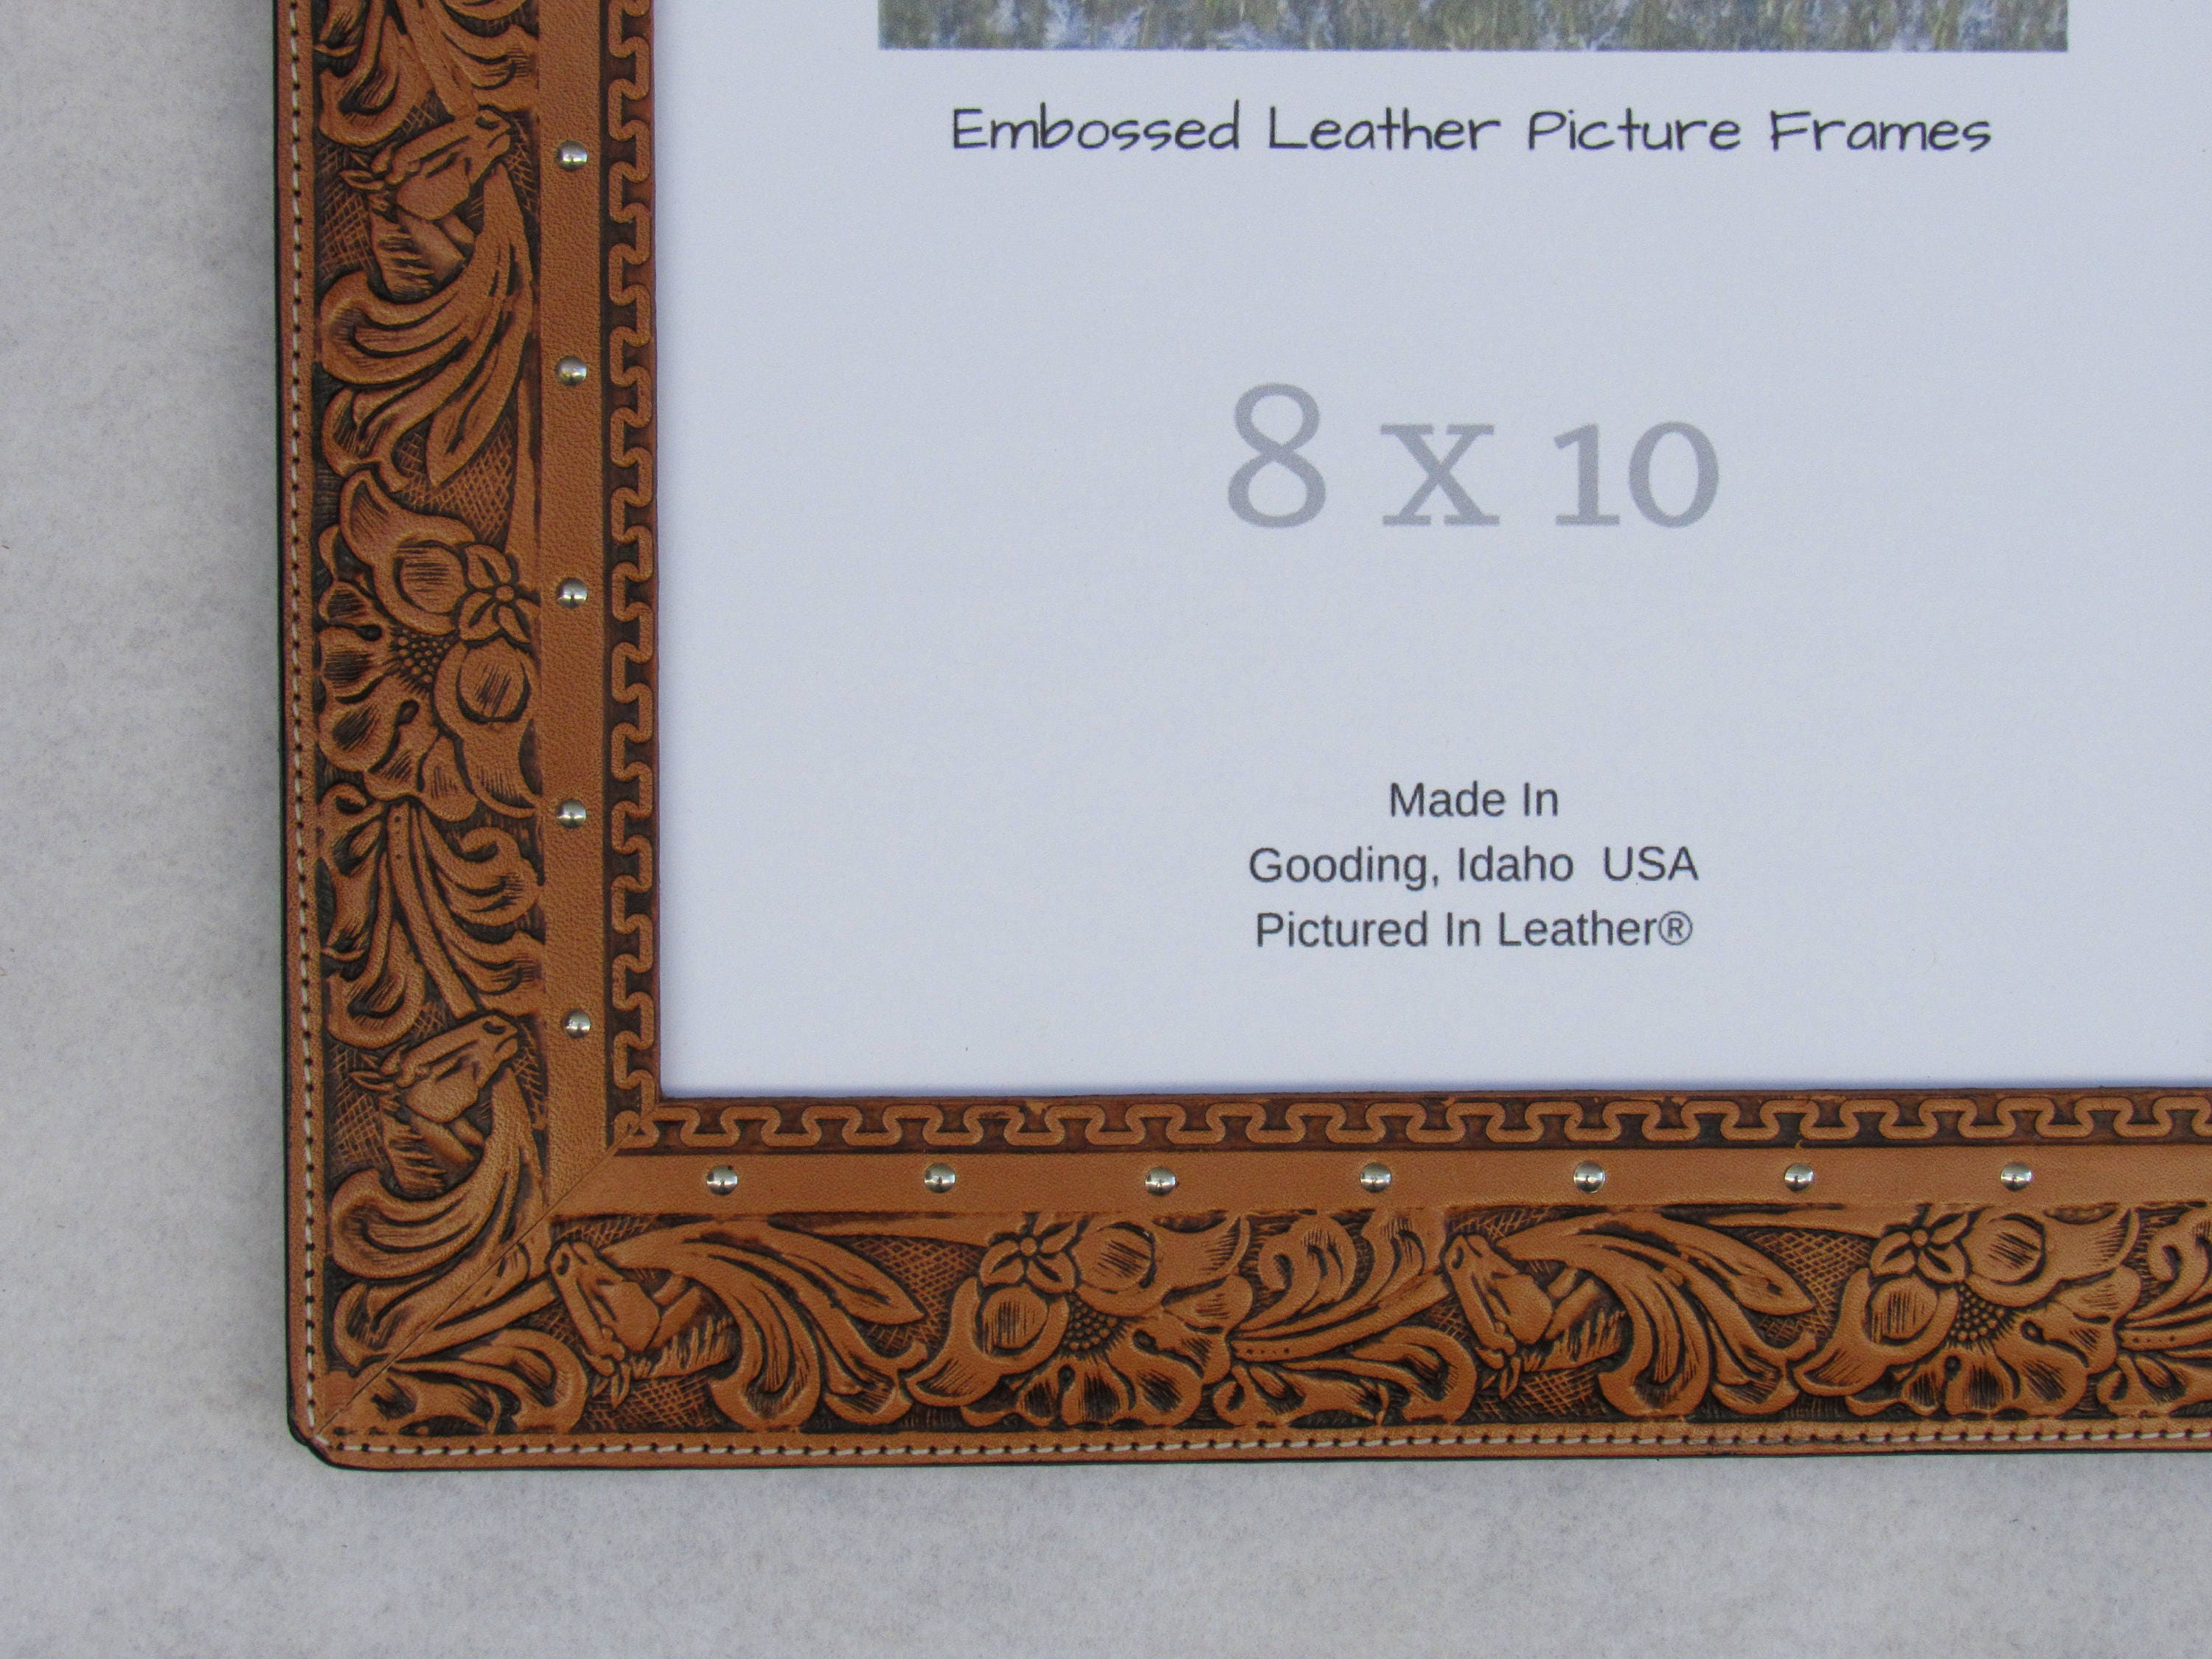 8x10 leather picture frame embossed horse and floral leather 8x10 leather picture frame embossed horse and floral leather photo frame horse picture frame western photo frame ready to ship jeuxipadfo Image collections